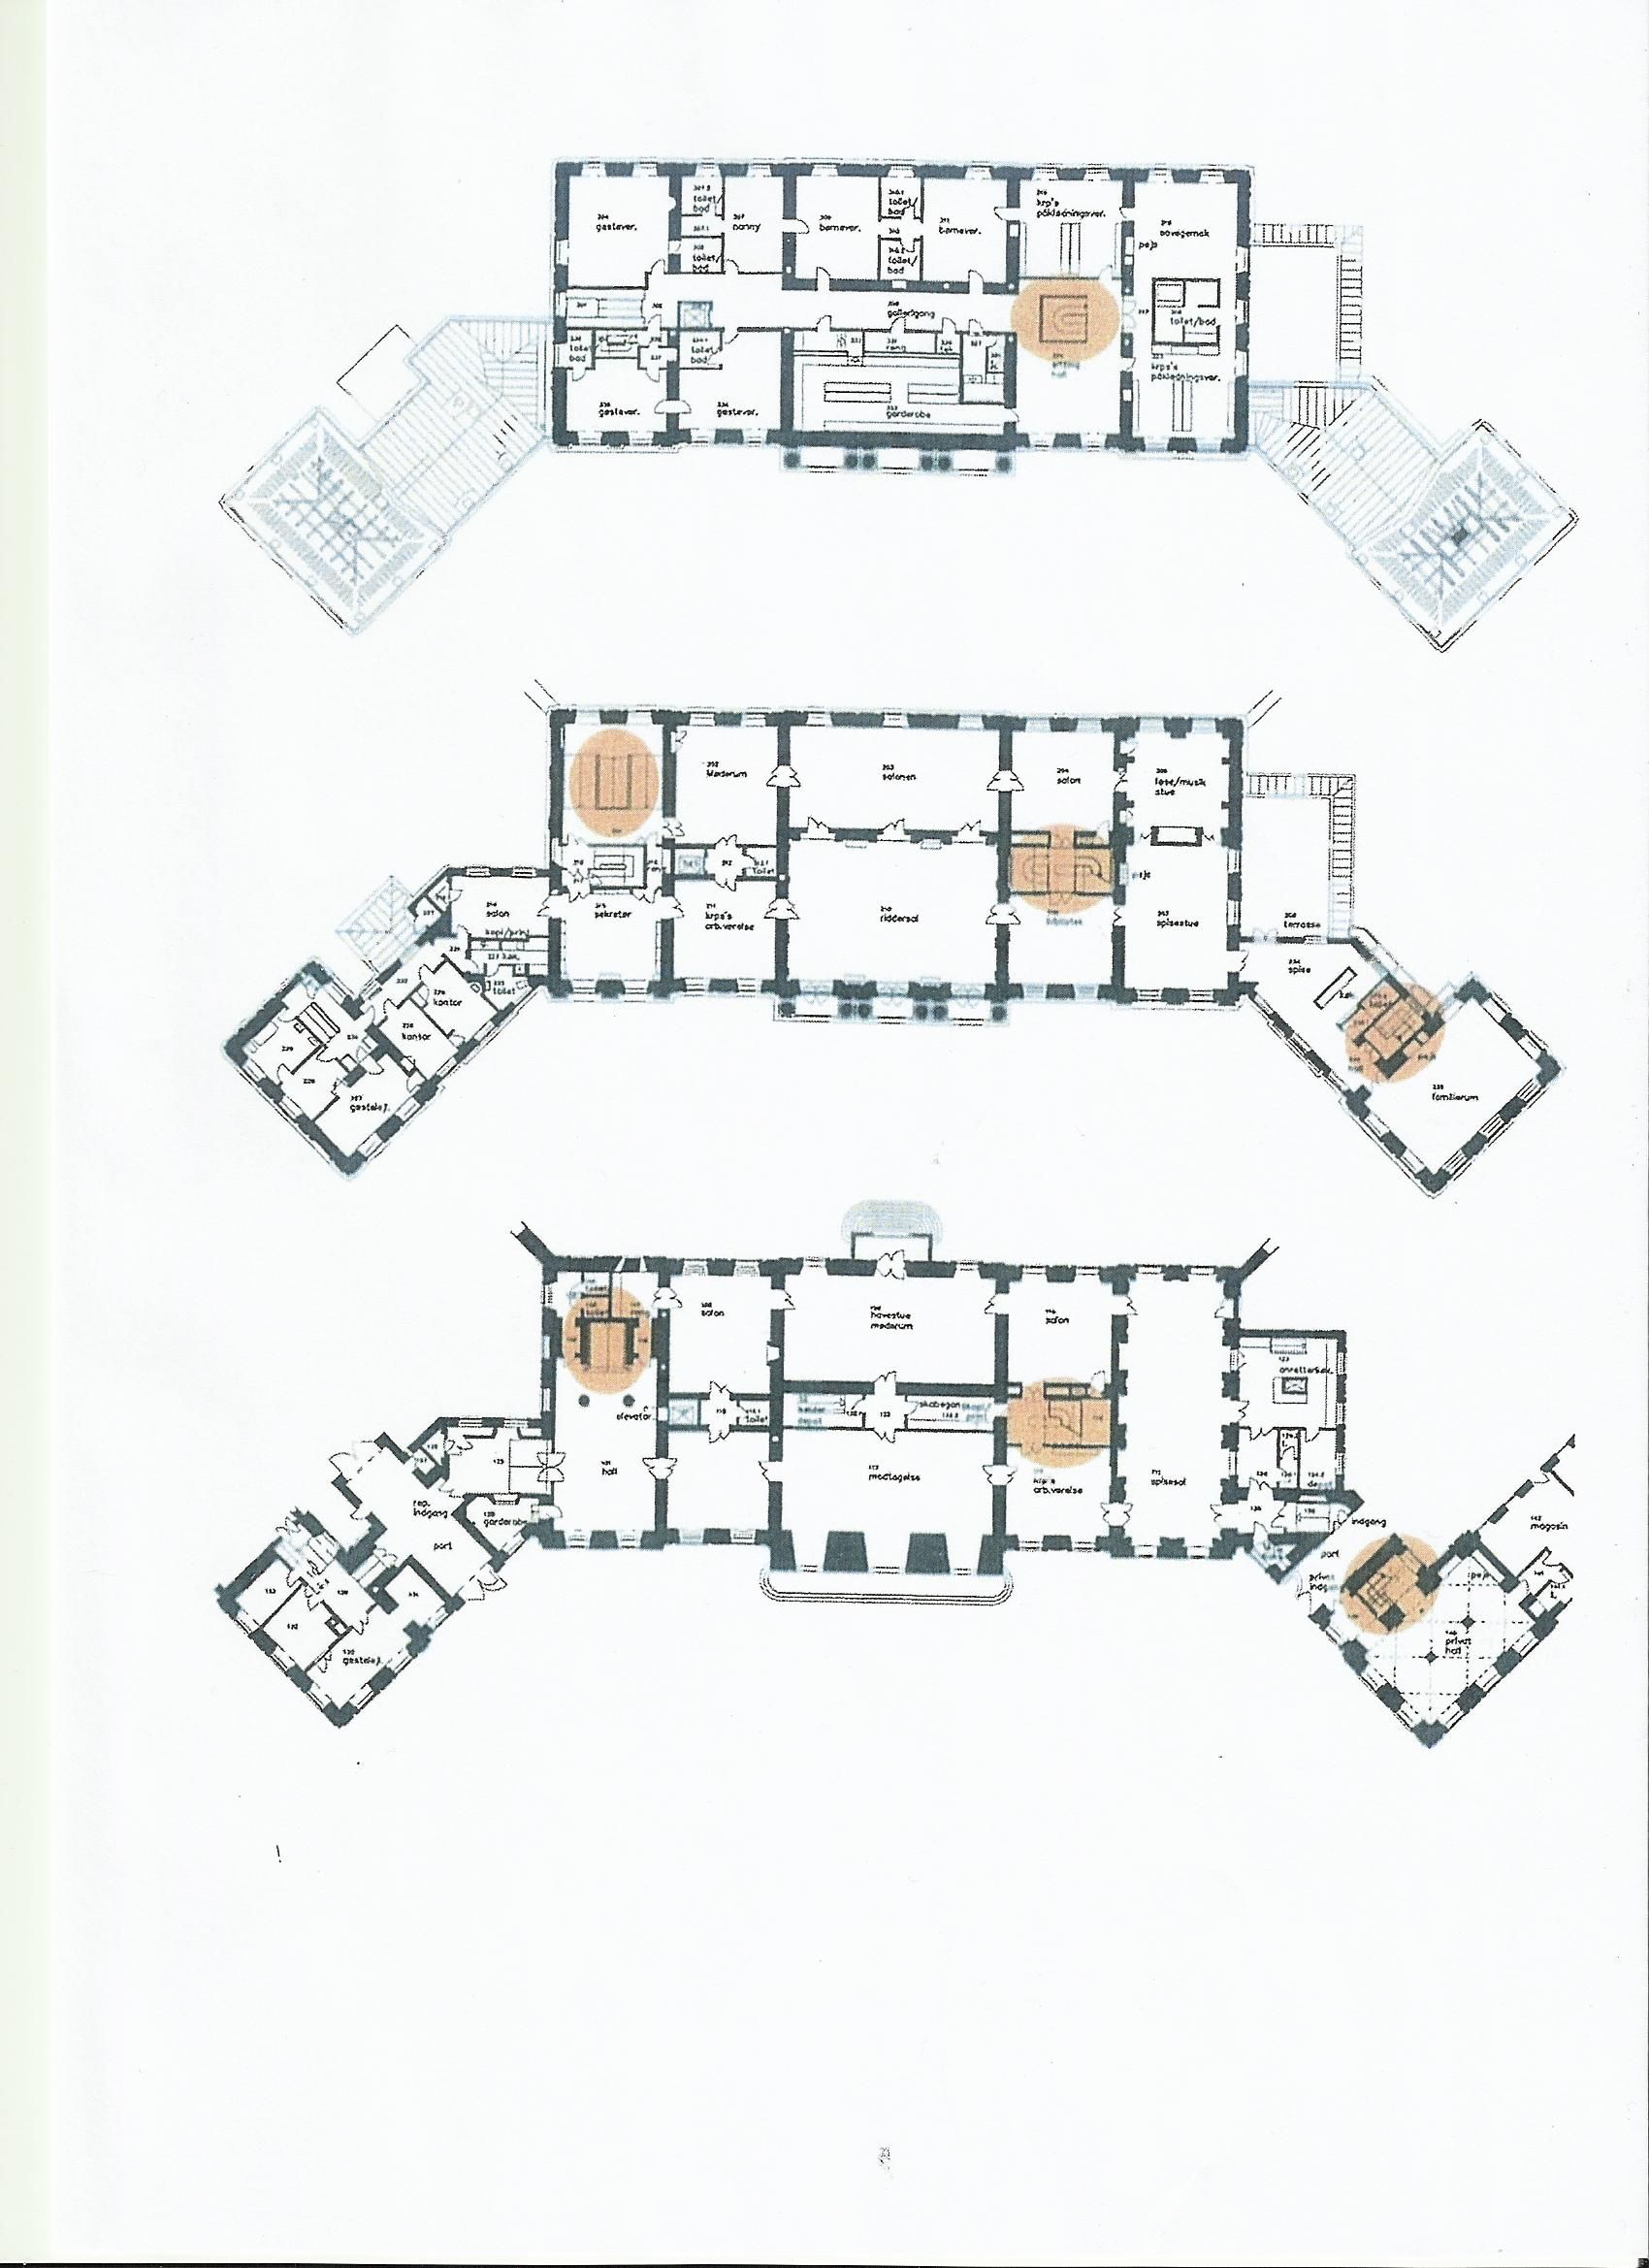 Floorplan Of The Three Main Levels Of Frederik The Viii S Palace Home To The Danish Crownprince Couple Architectural Floor Plans Castle Floor Plan Floor Plans